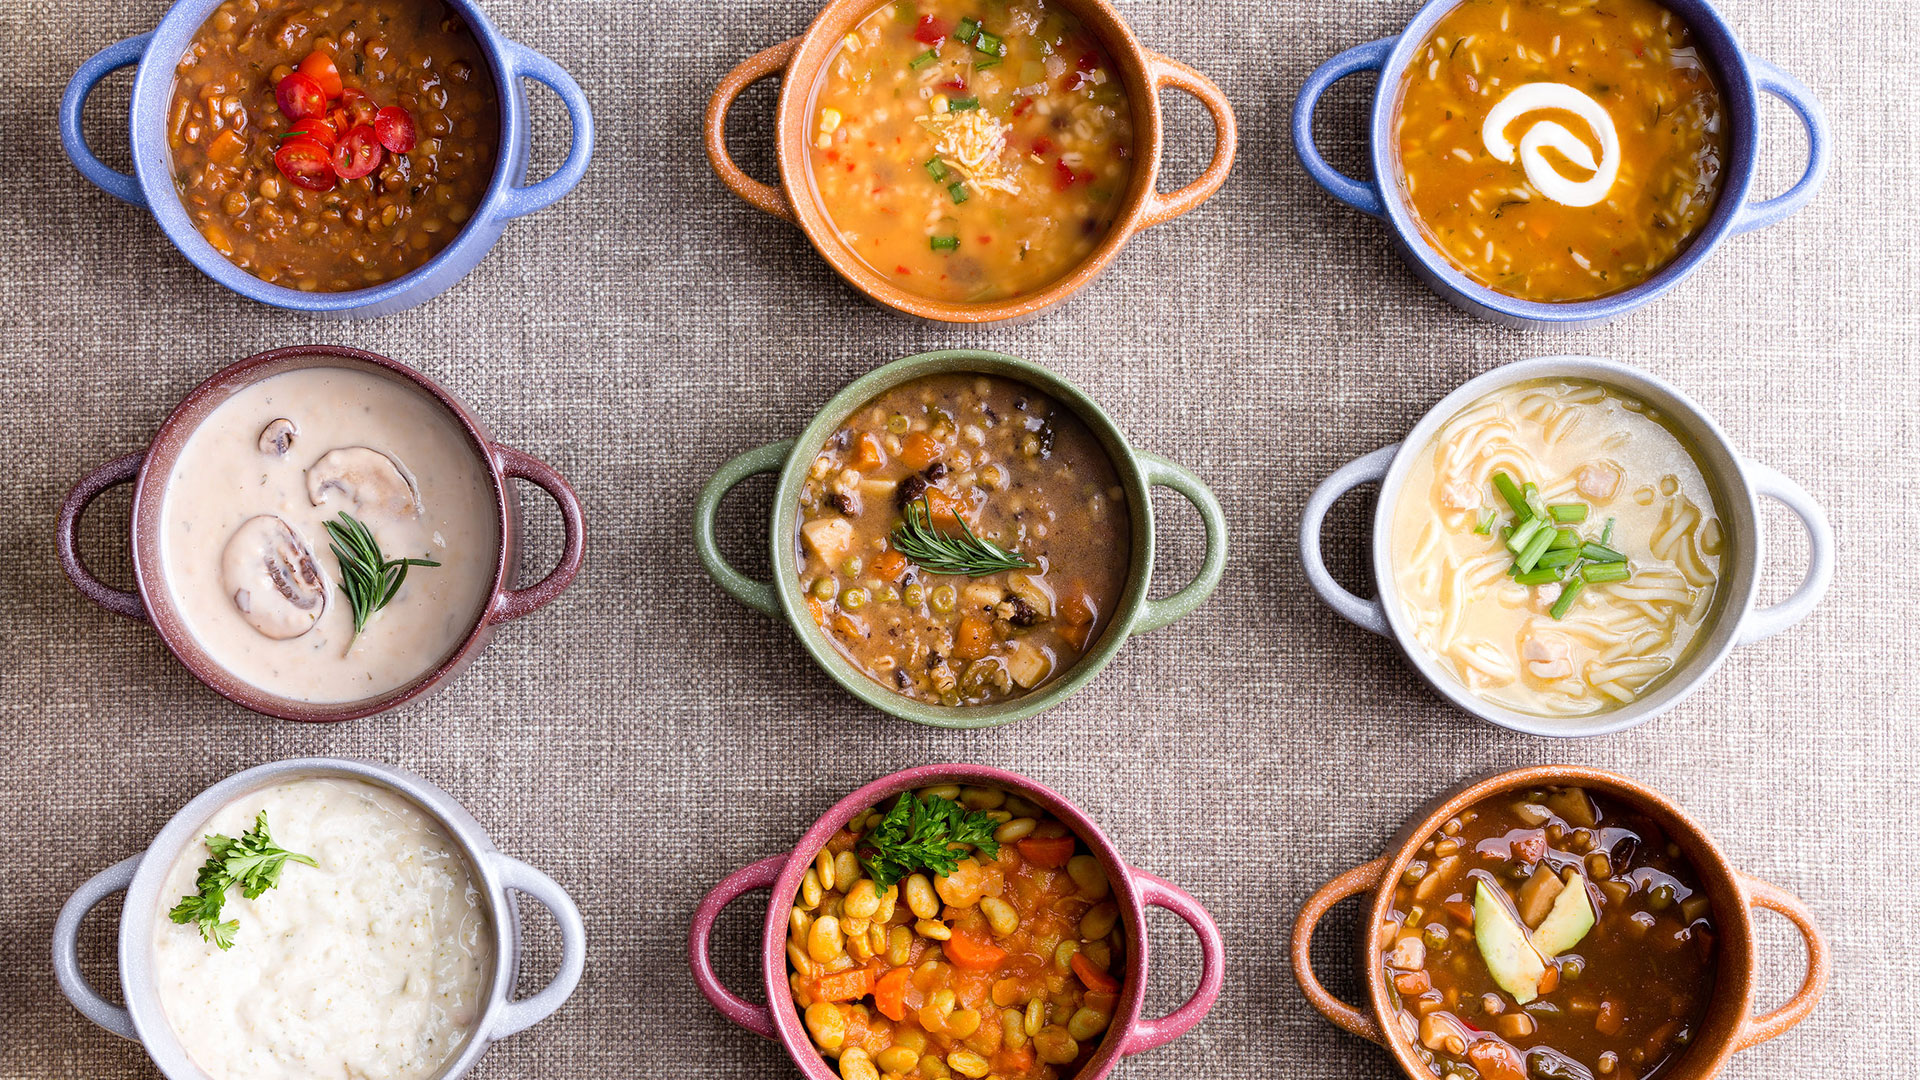 5 Popular Soups That Will Spoil Your Diet